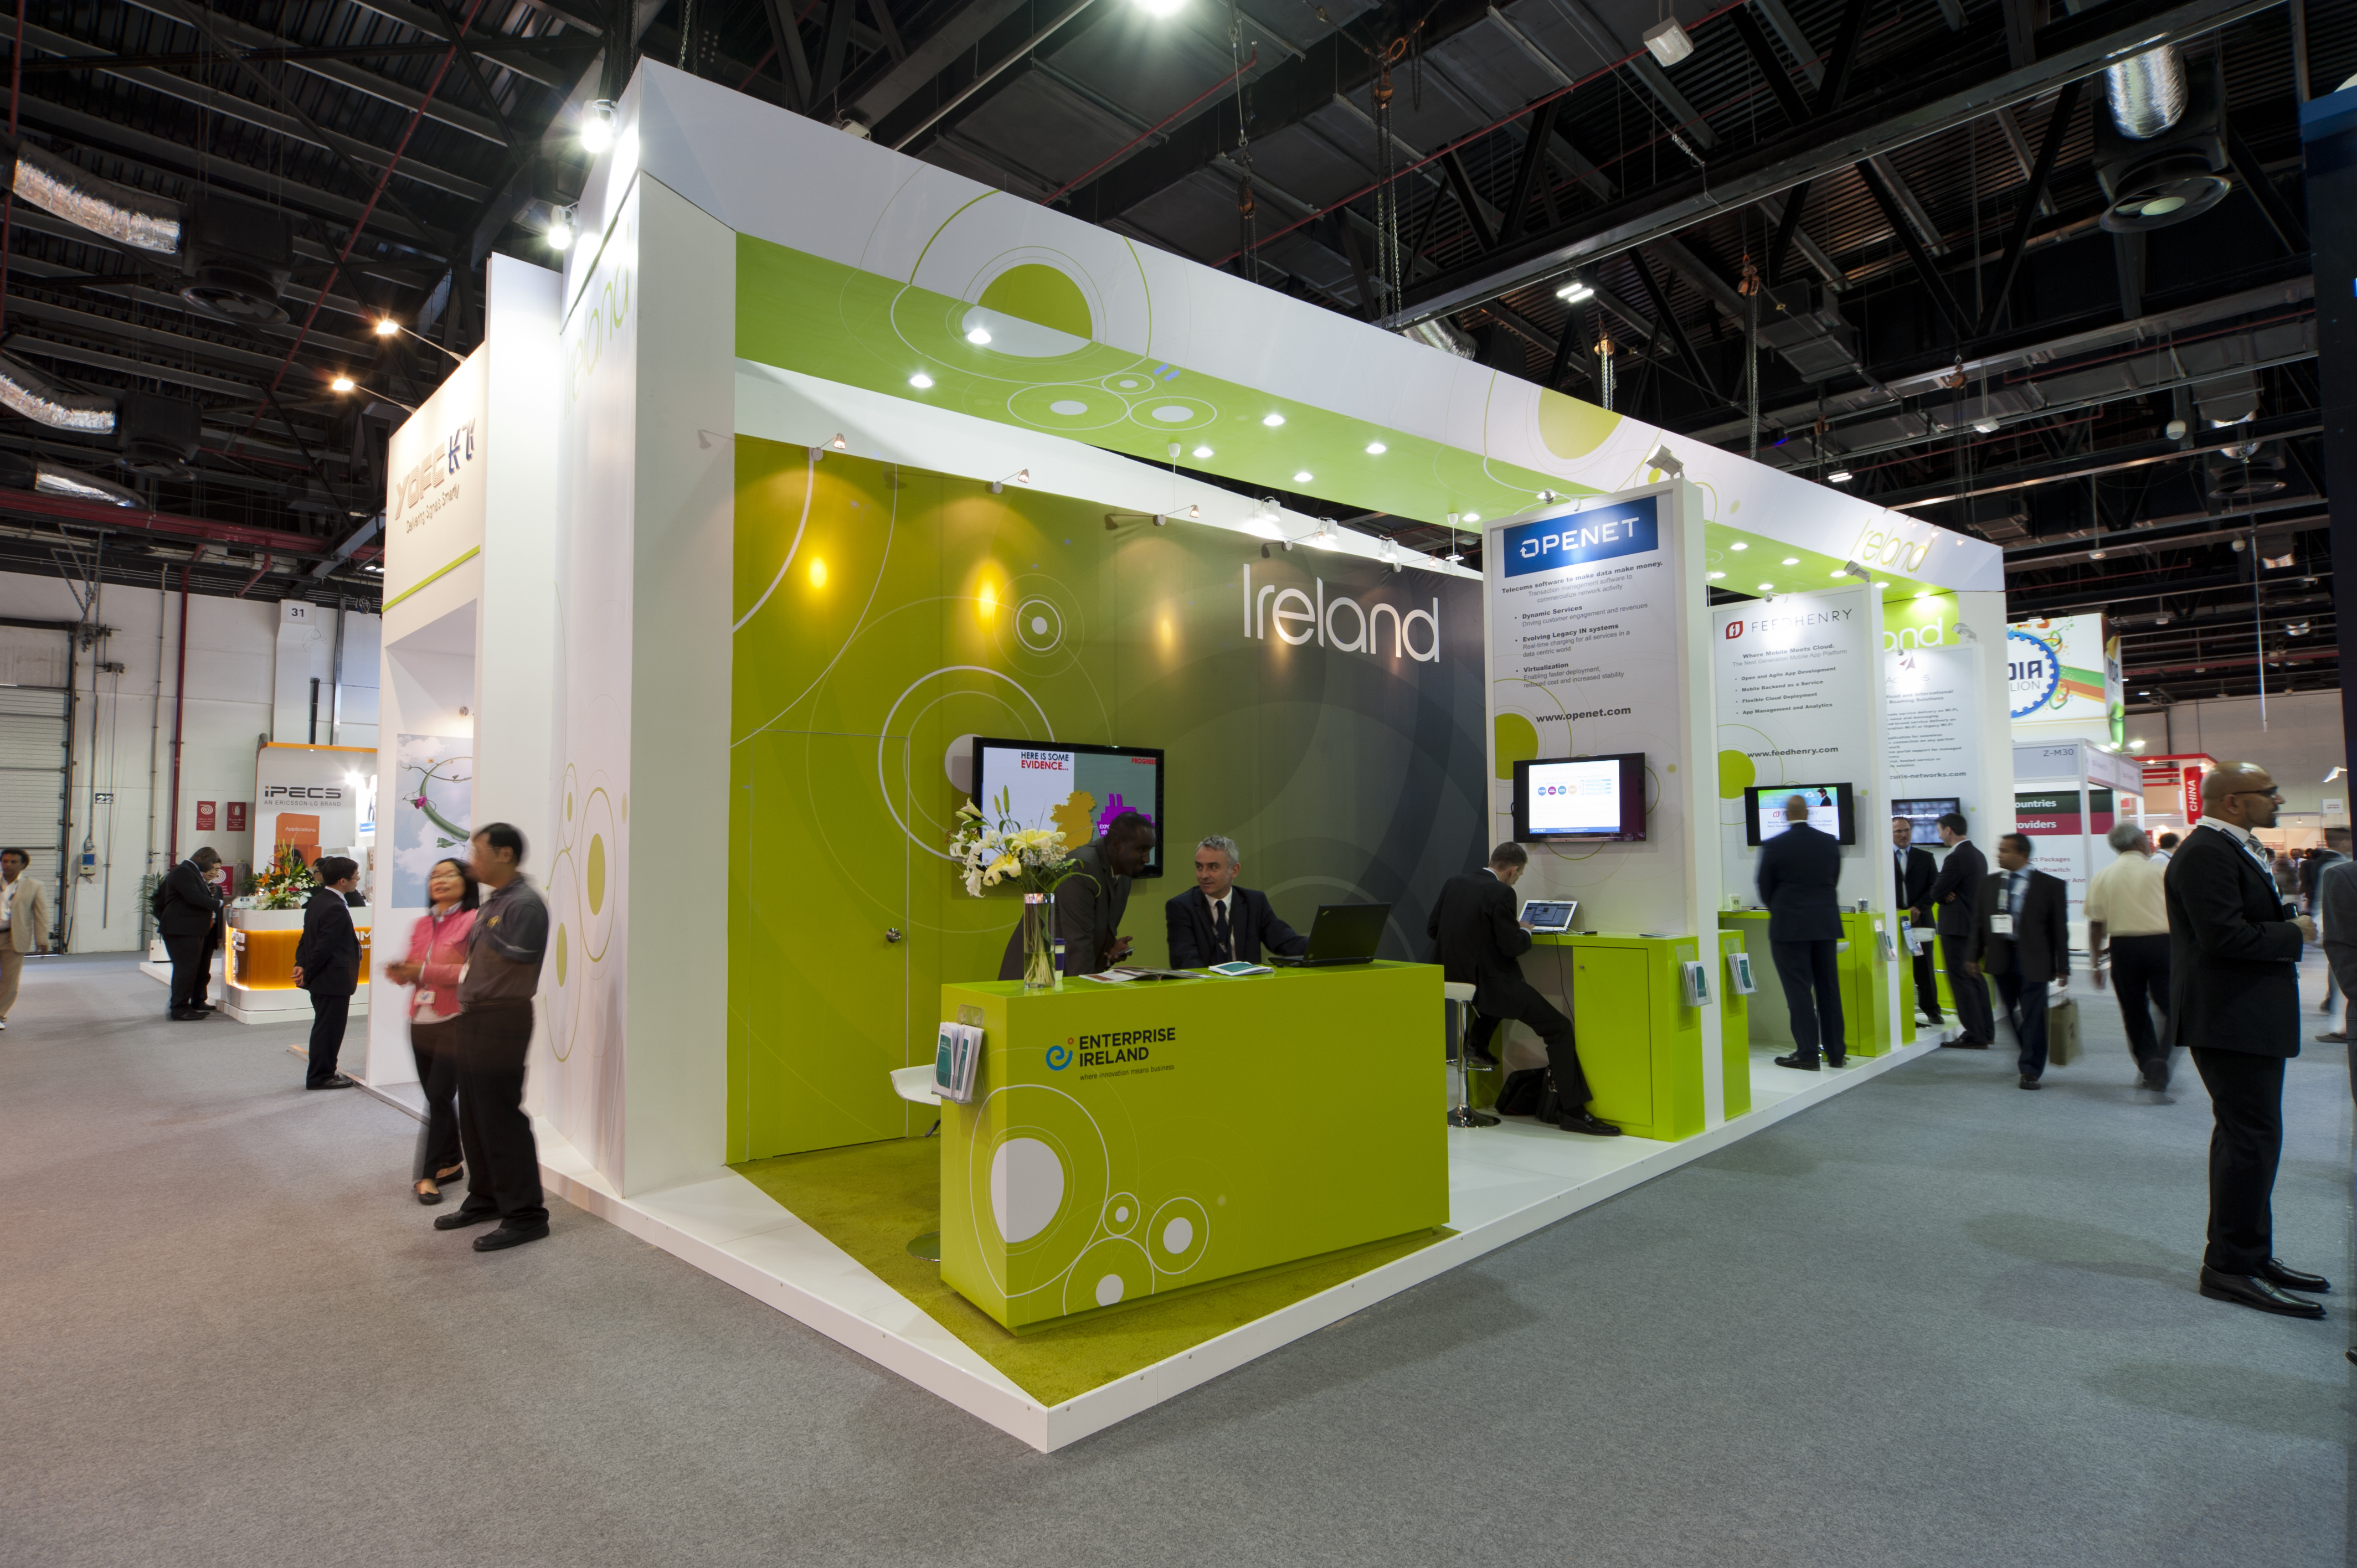 Exhibition Stands And Events : Design inme